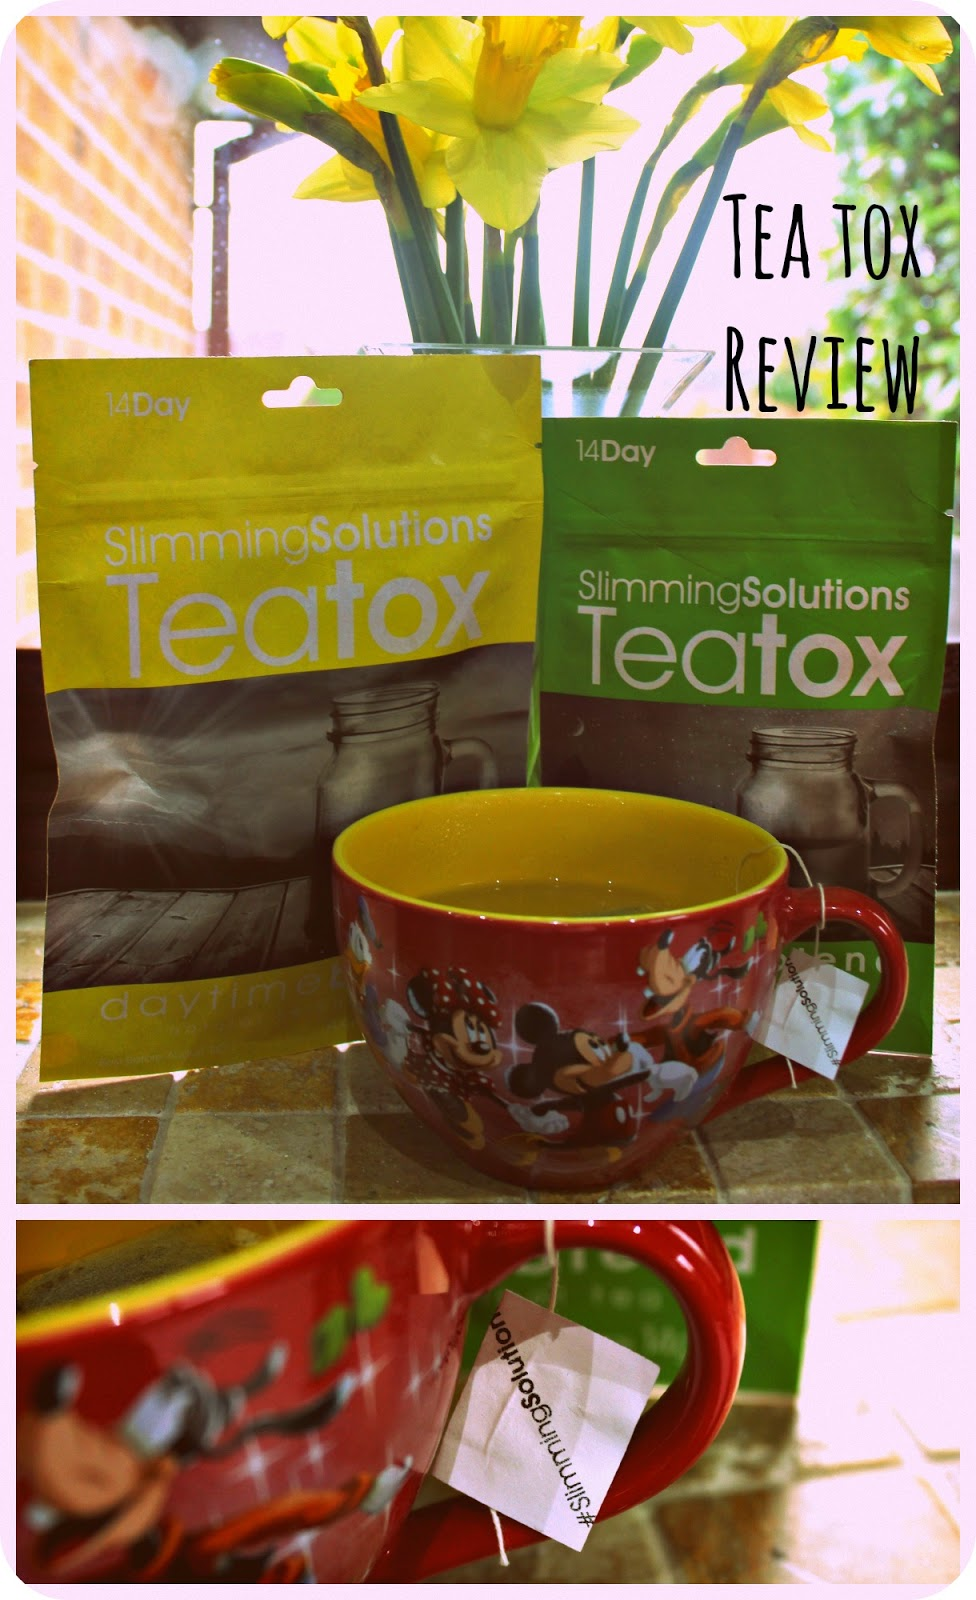 Slimming Solutions: Teatox